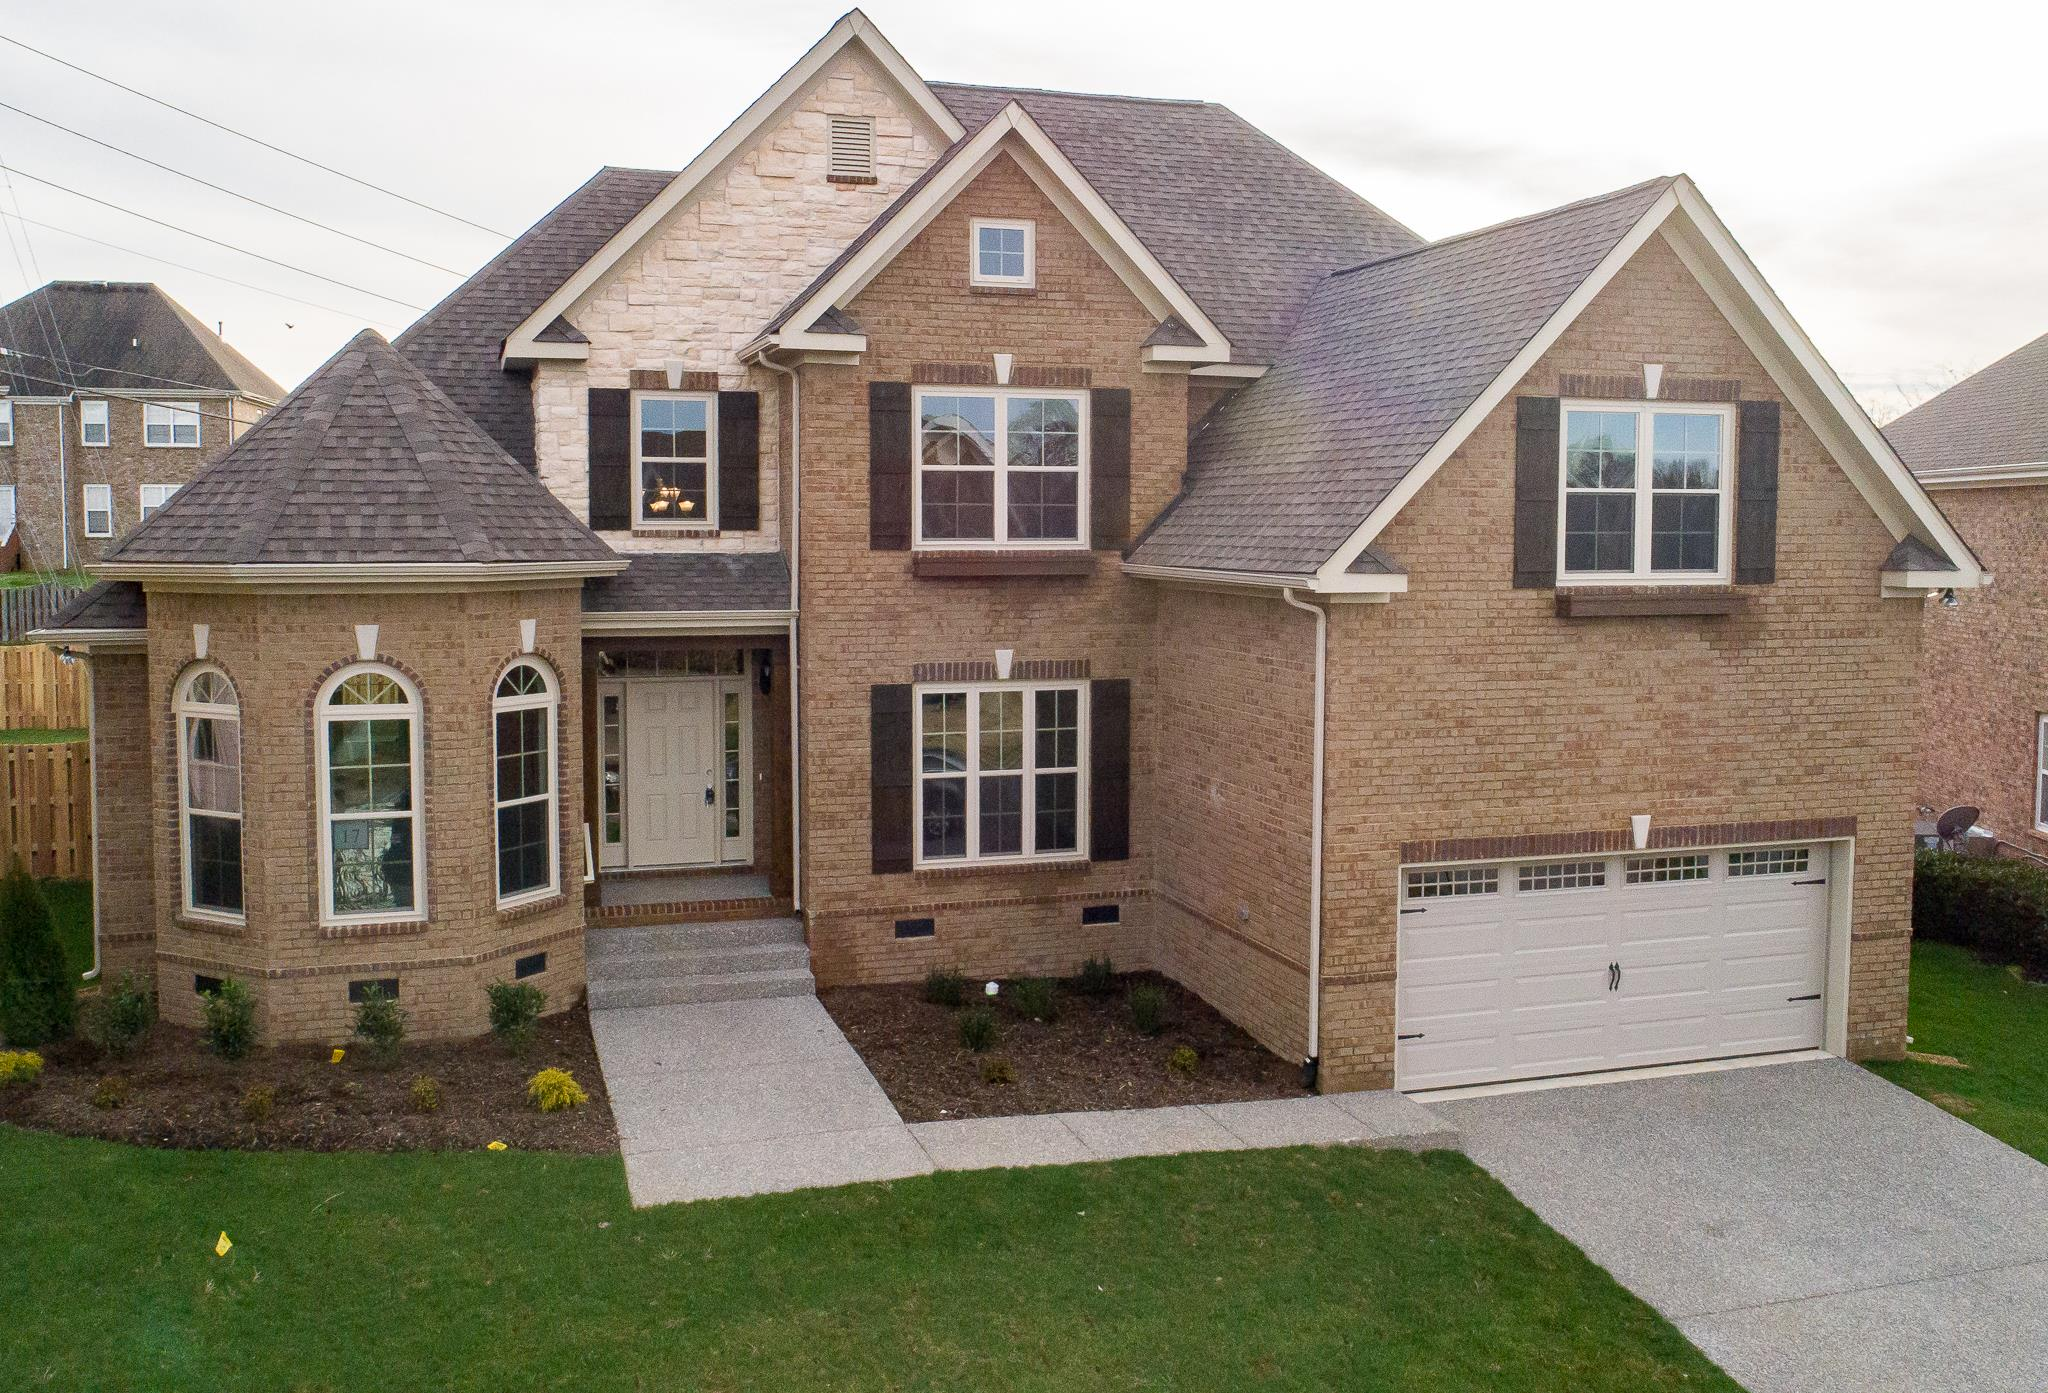 6011 Spade Drive Lot 196, Spring Hill, Tennessee